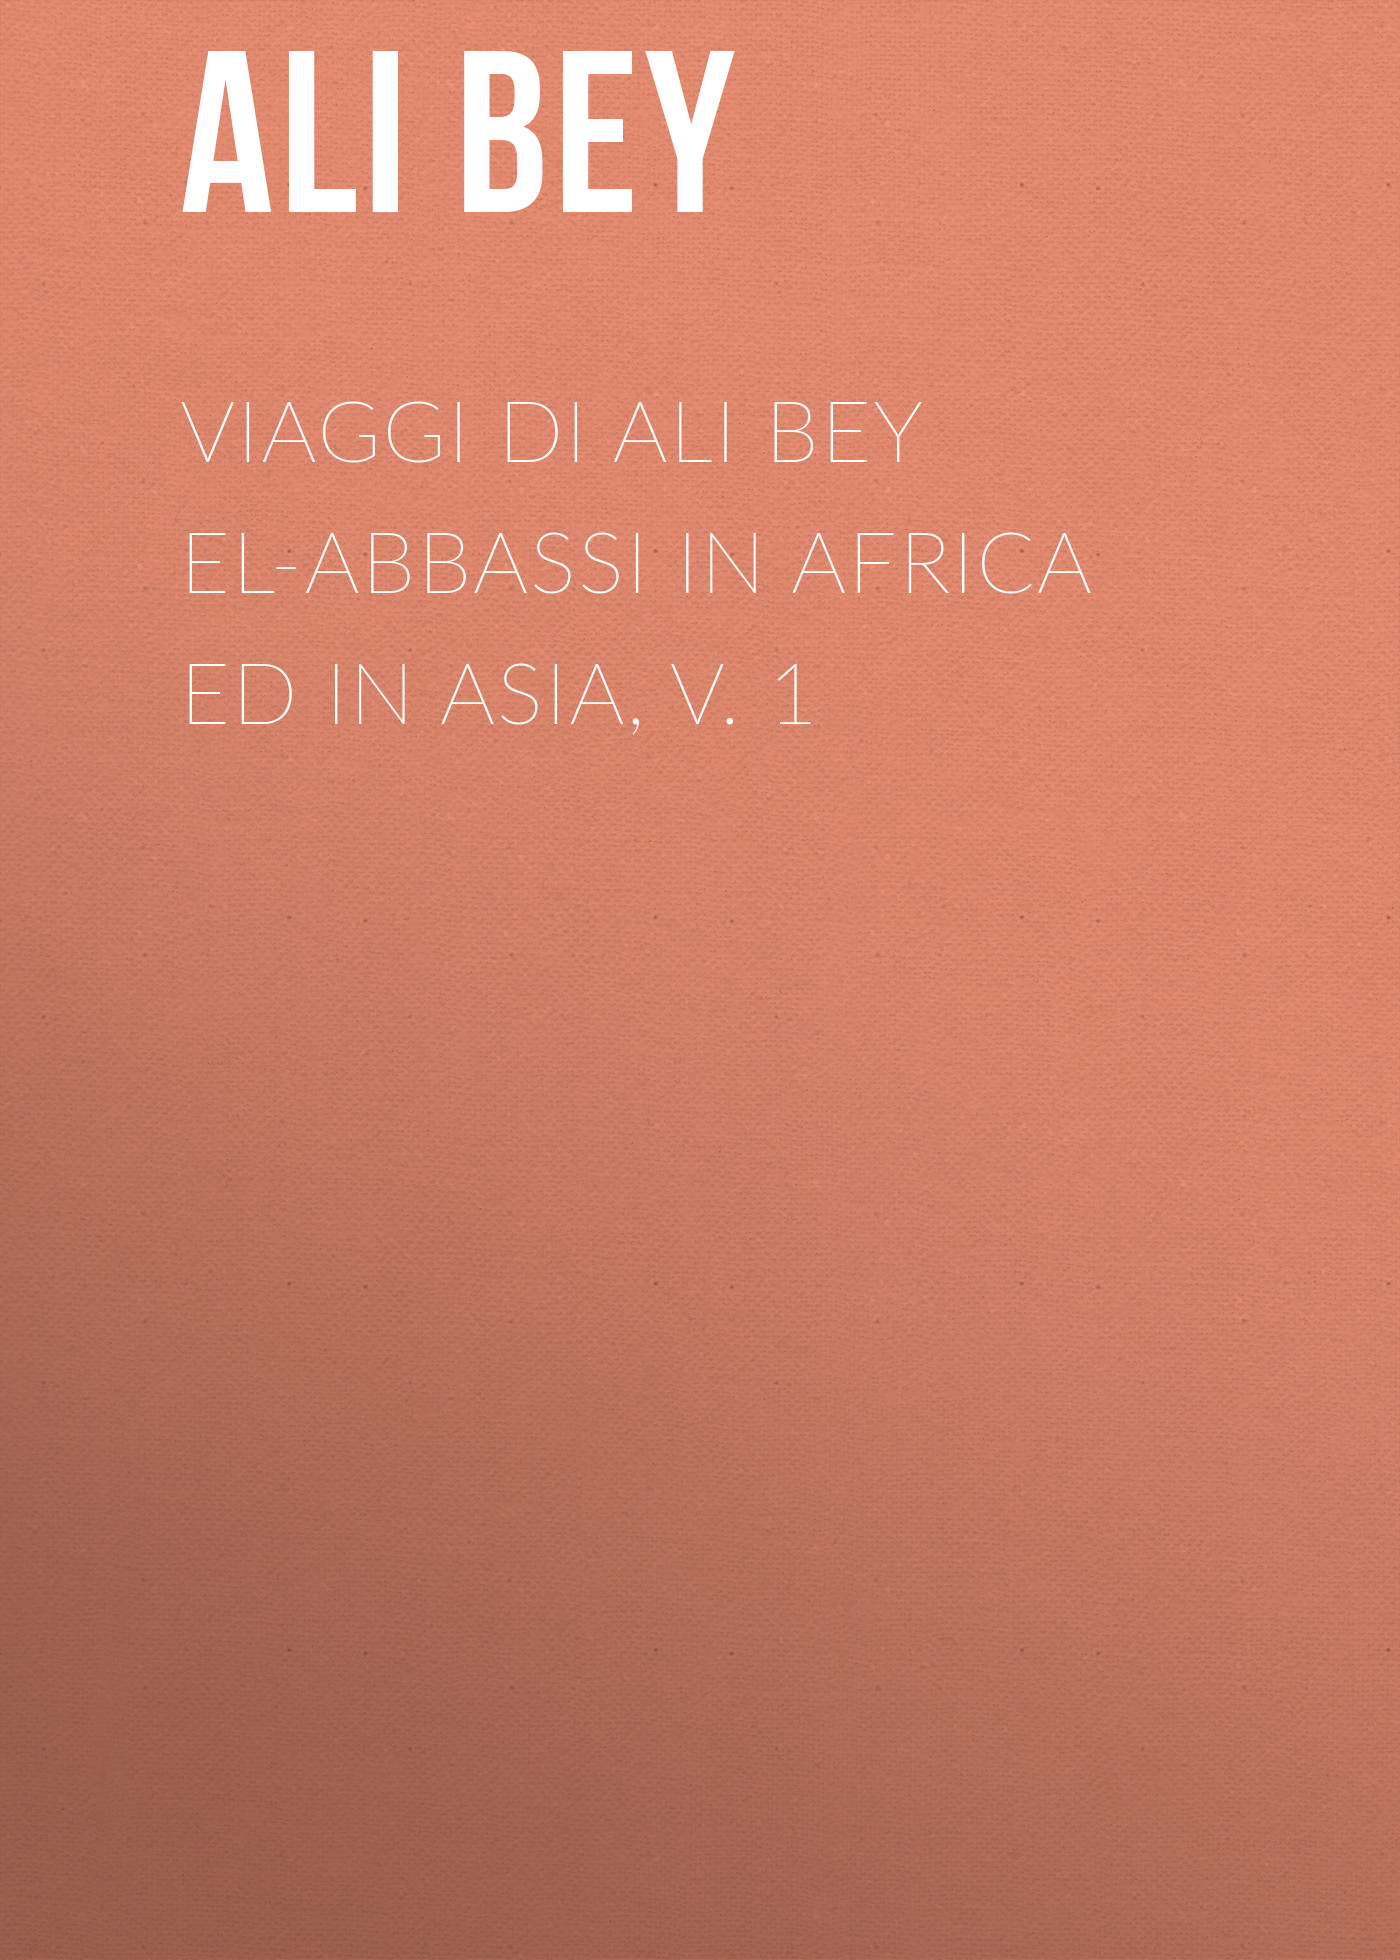 Ali Bey Viaggi di Ali Bey el-Abbassi in Africa ed in Asia, v. 1 sustaining rice production in tropical africa